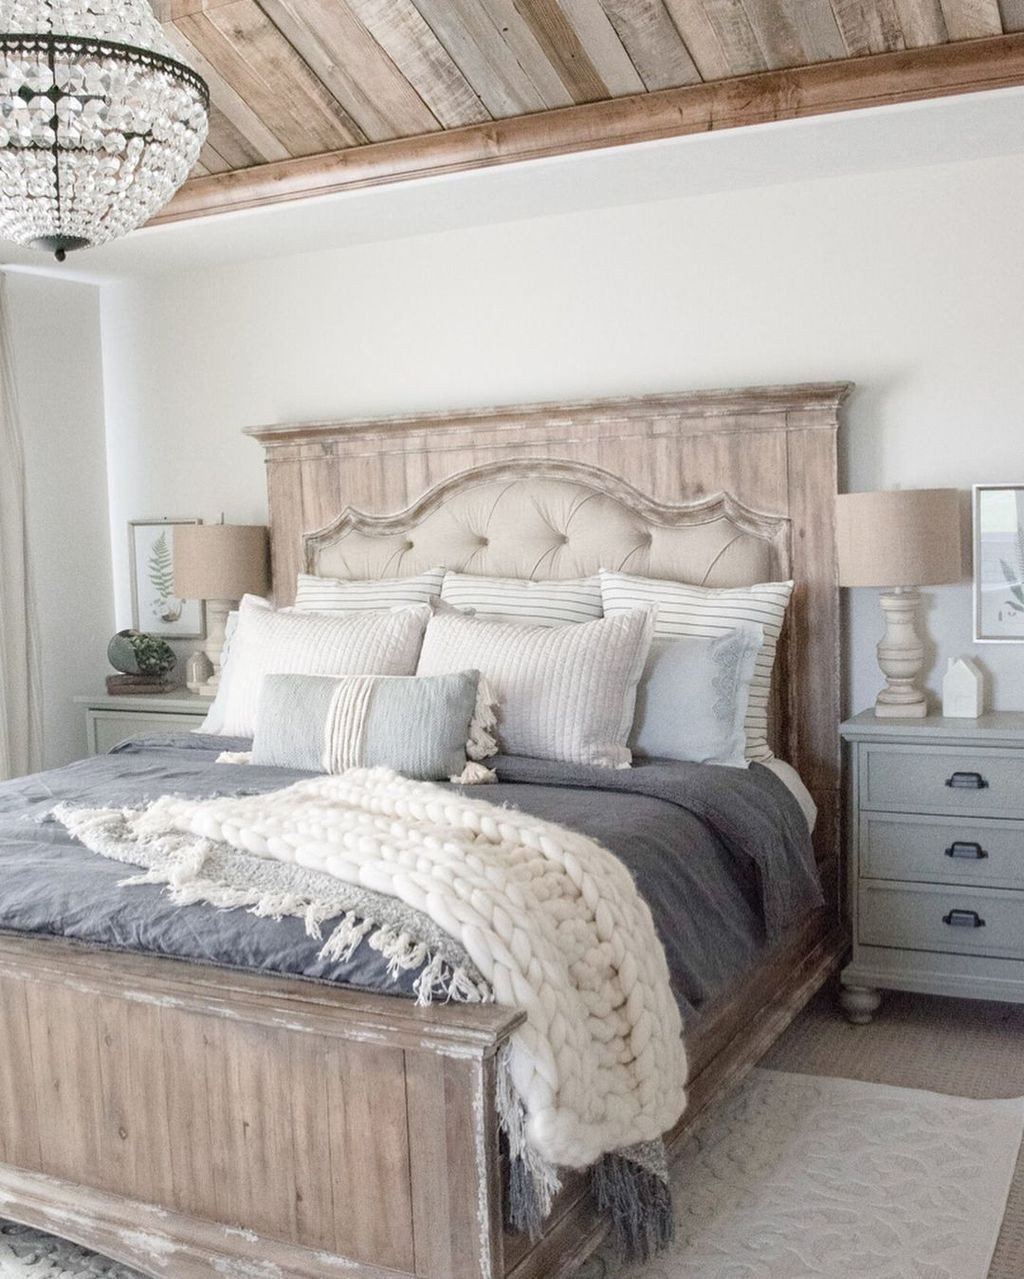 Farmhouse Style Bedroom Set Beautiful Wooden Table Diy Wood Projects Wood Cleaner Free Woodworking